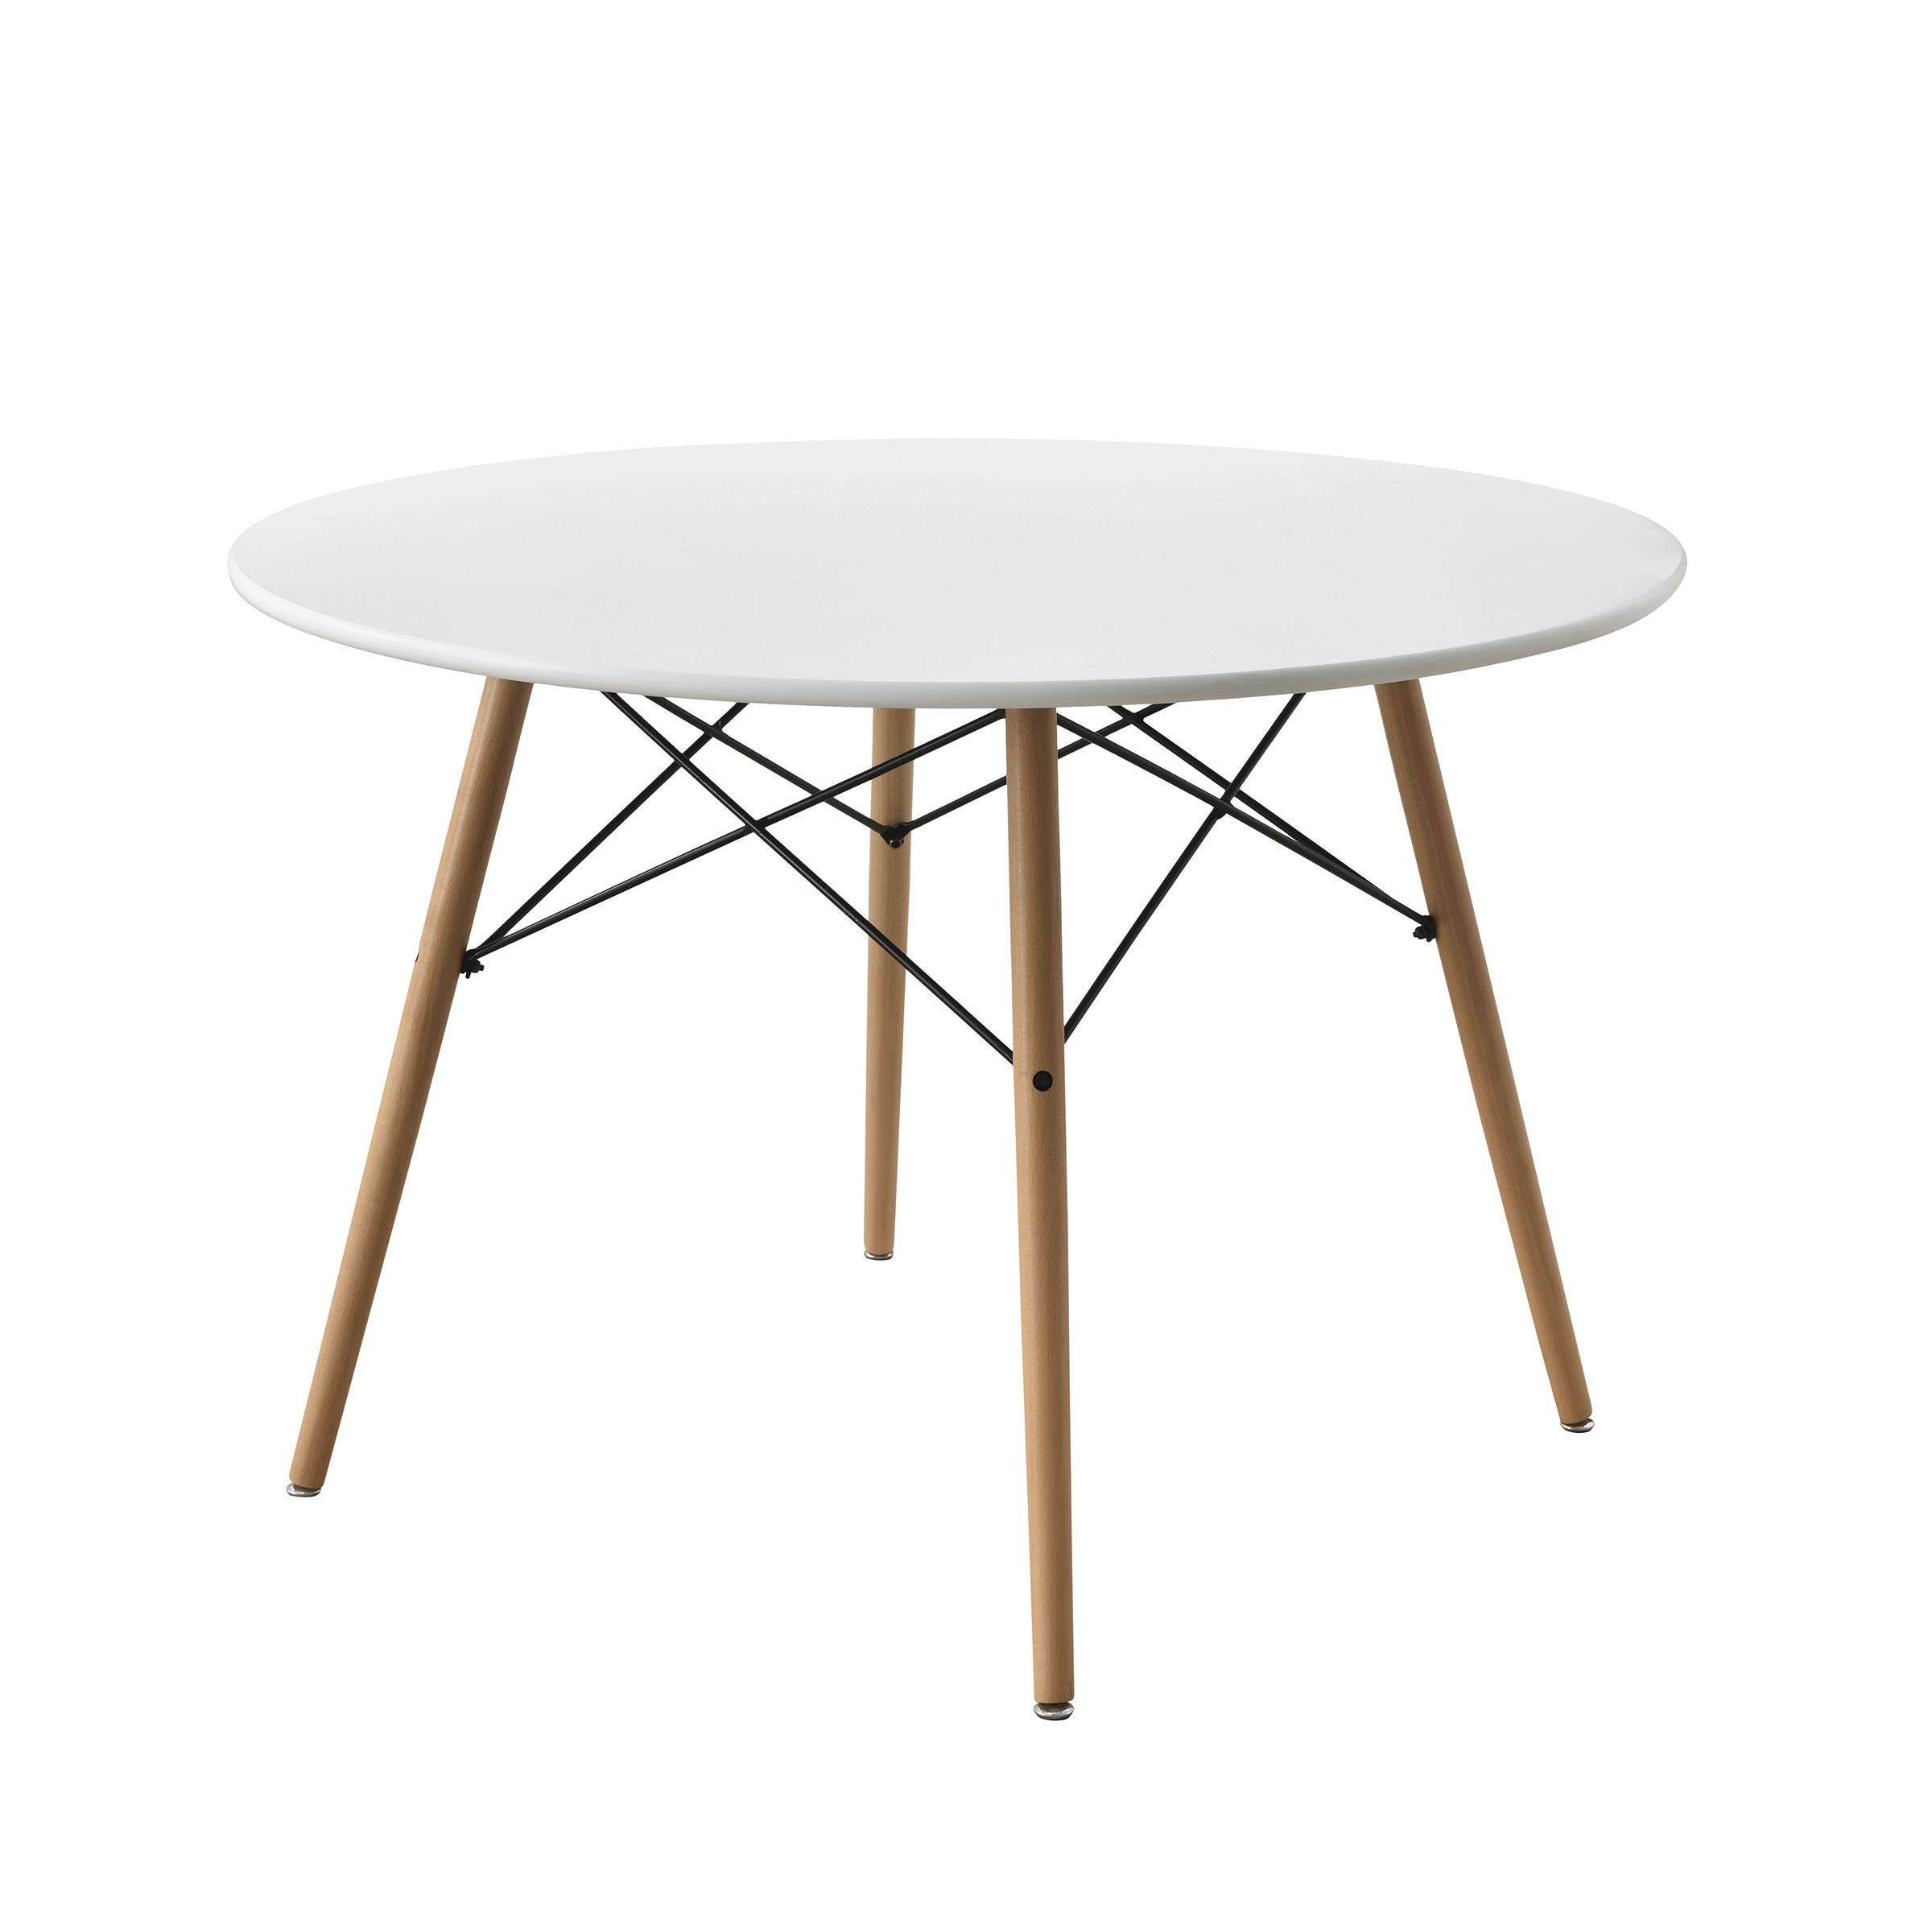 Mainstays 42 Round Modern Dining Table Mid Century Style Beech And White Color Walmart Com Midcentury Modern Dining Table Modern Dining Table Dining Sets Modern [ 2400 x 2400 Pixel ]